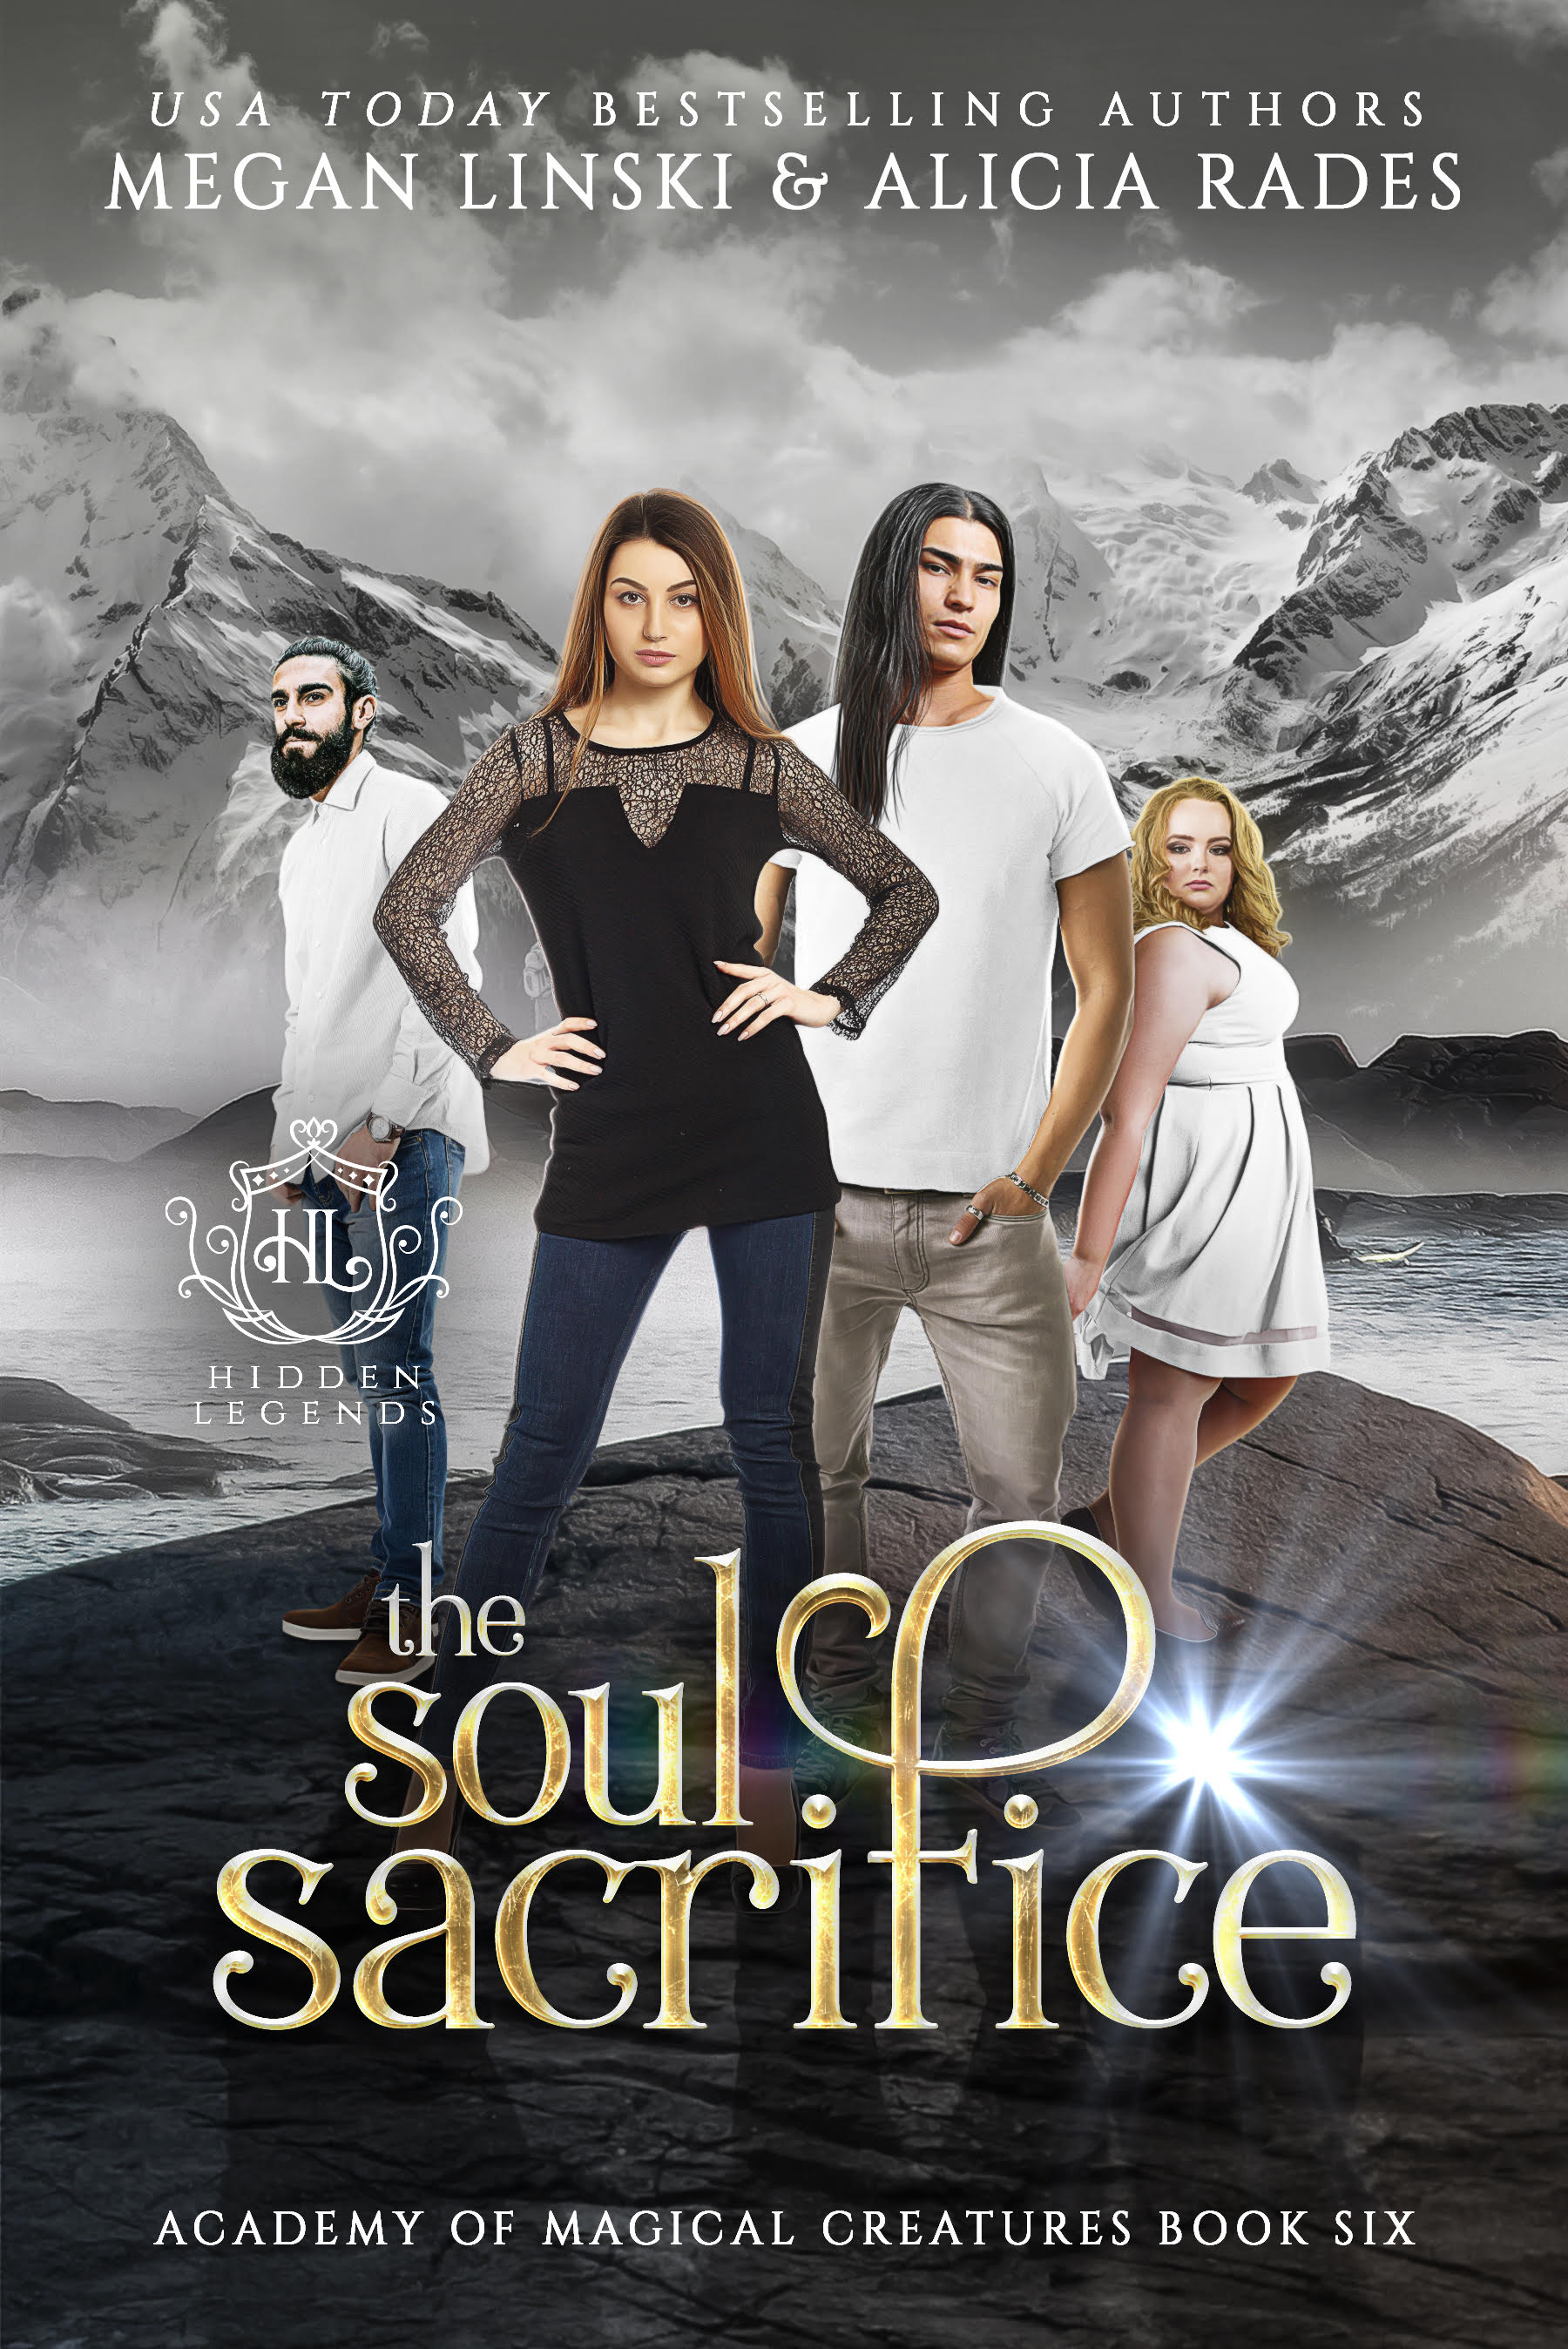 The Soul Sacrifice